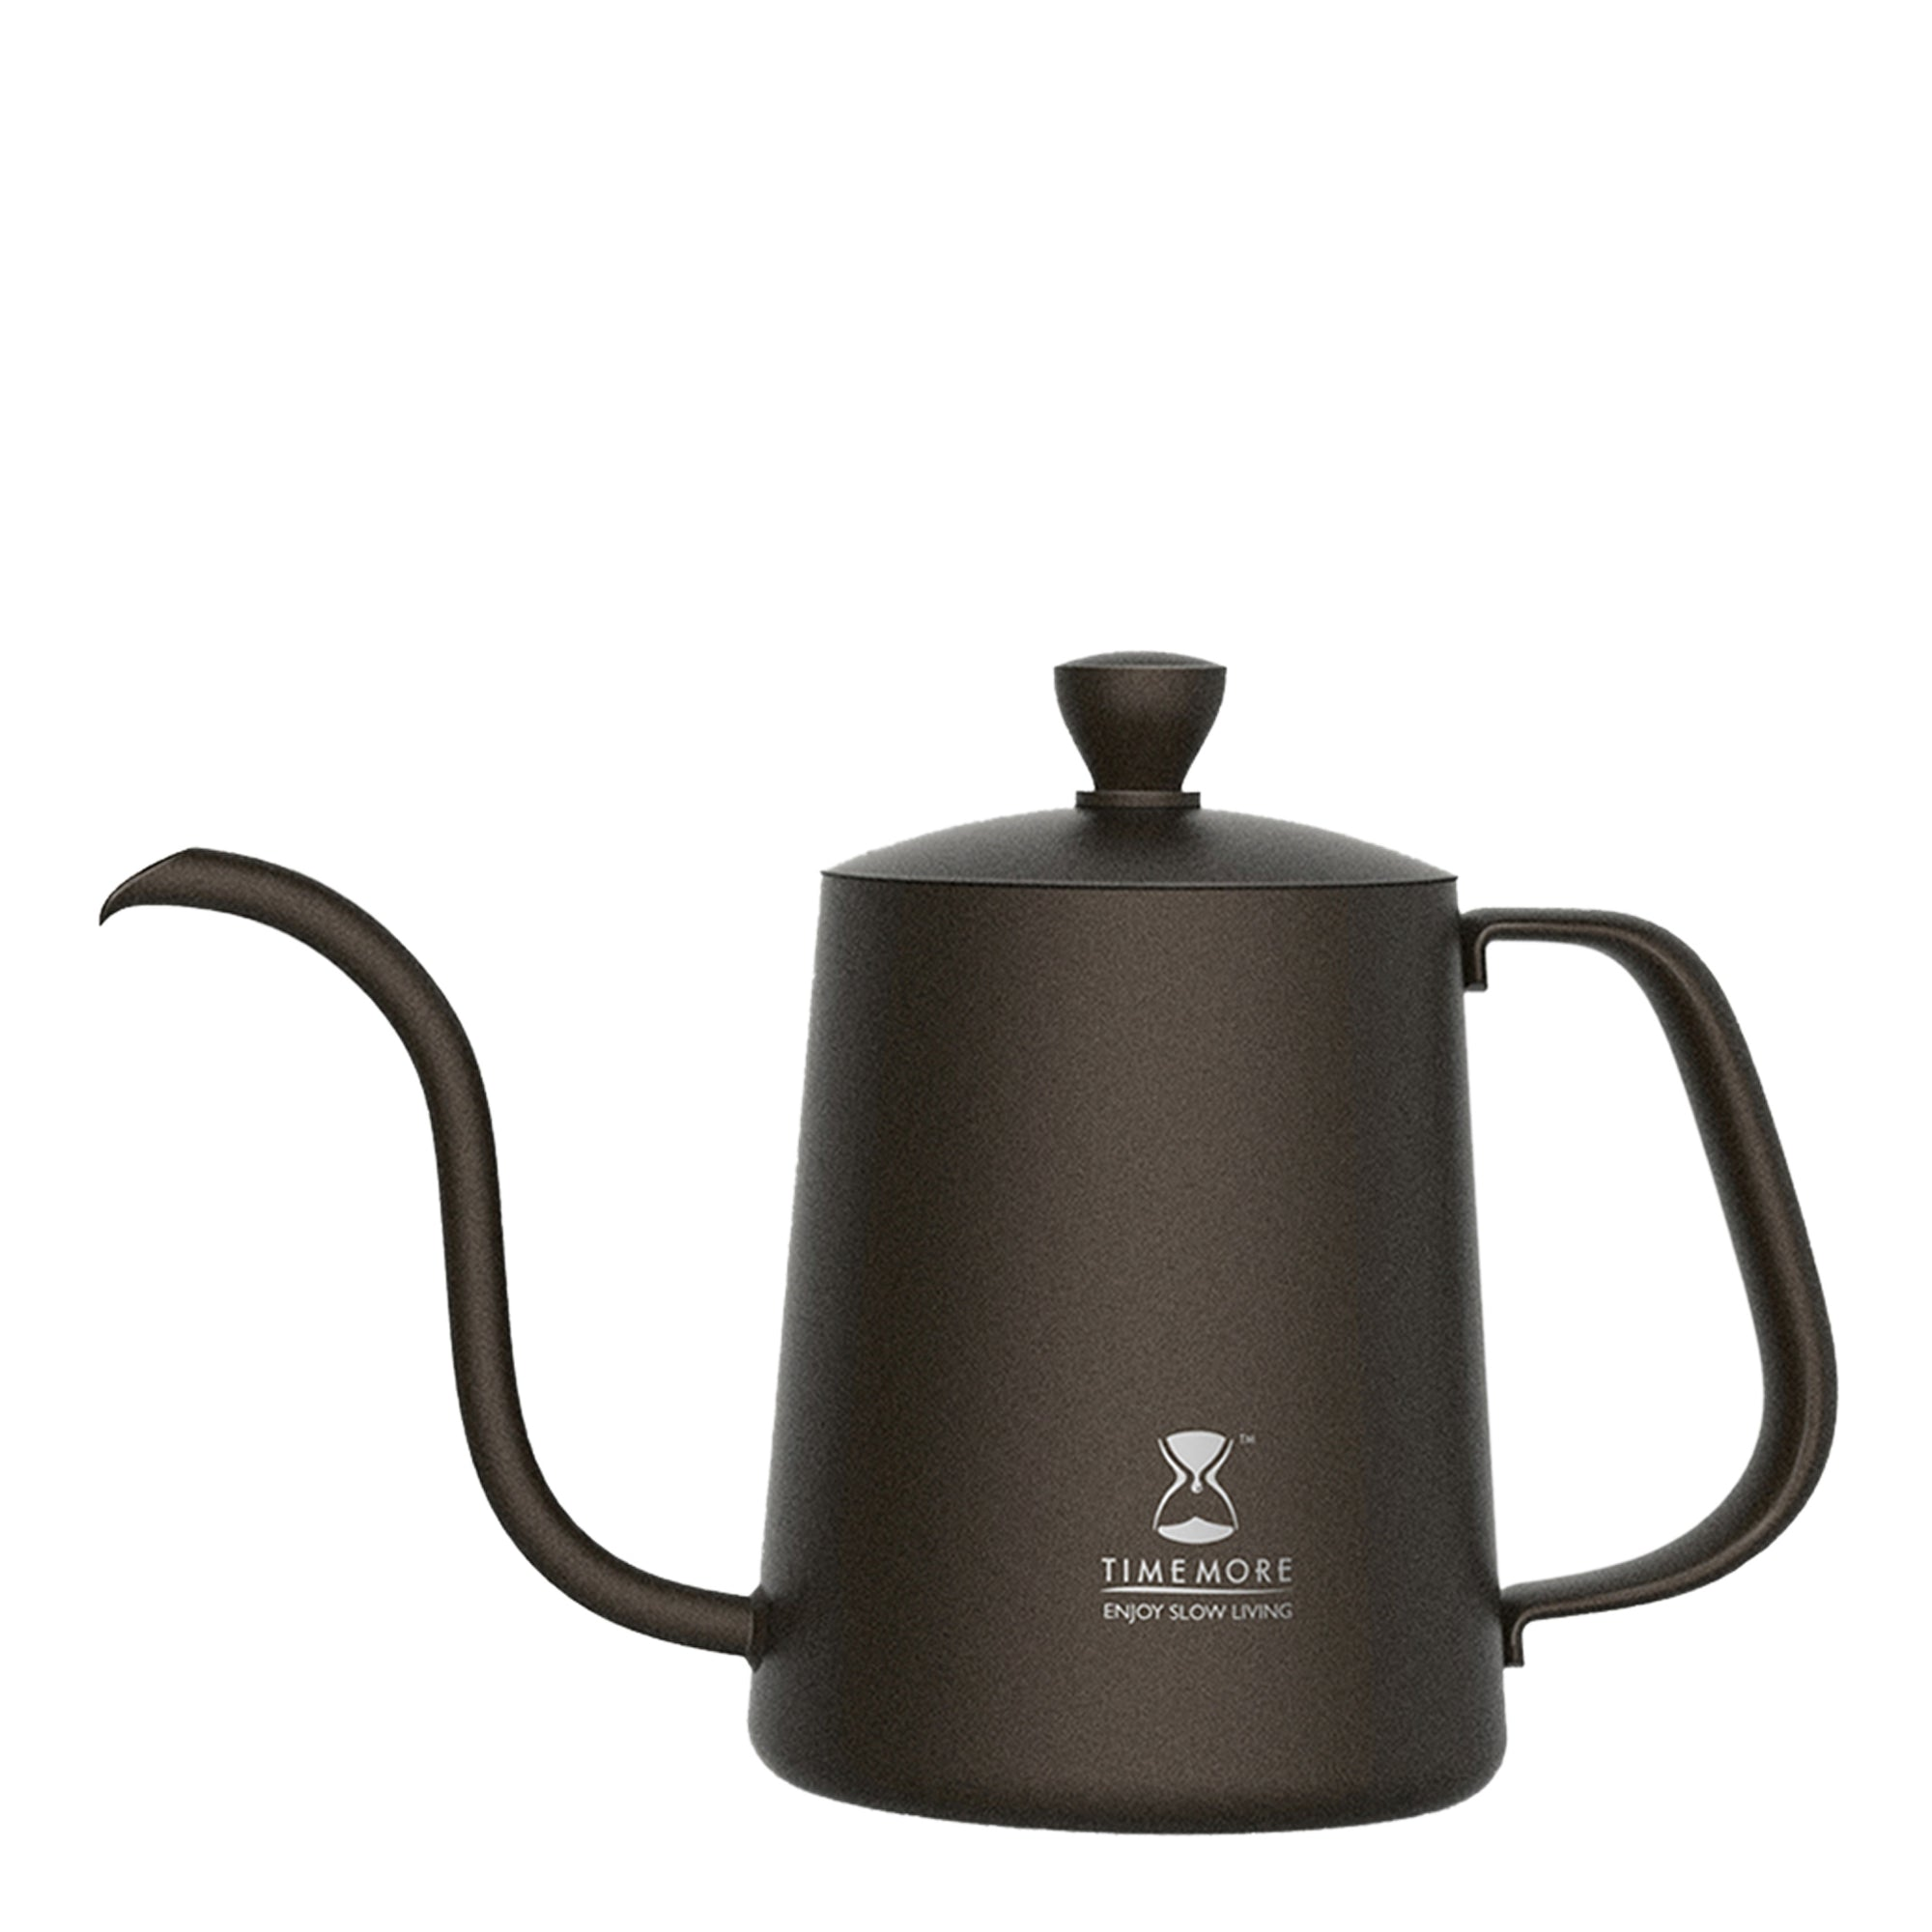 Kettle Fish 600ml - Timemore - Espresso Gear